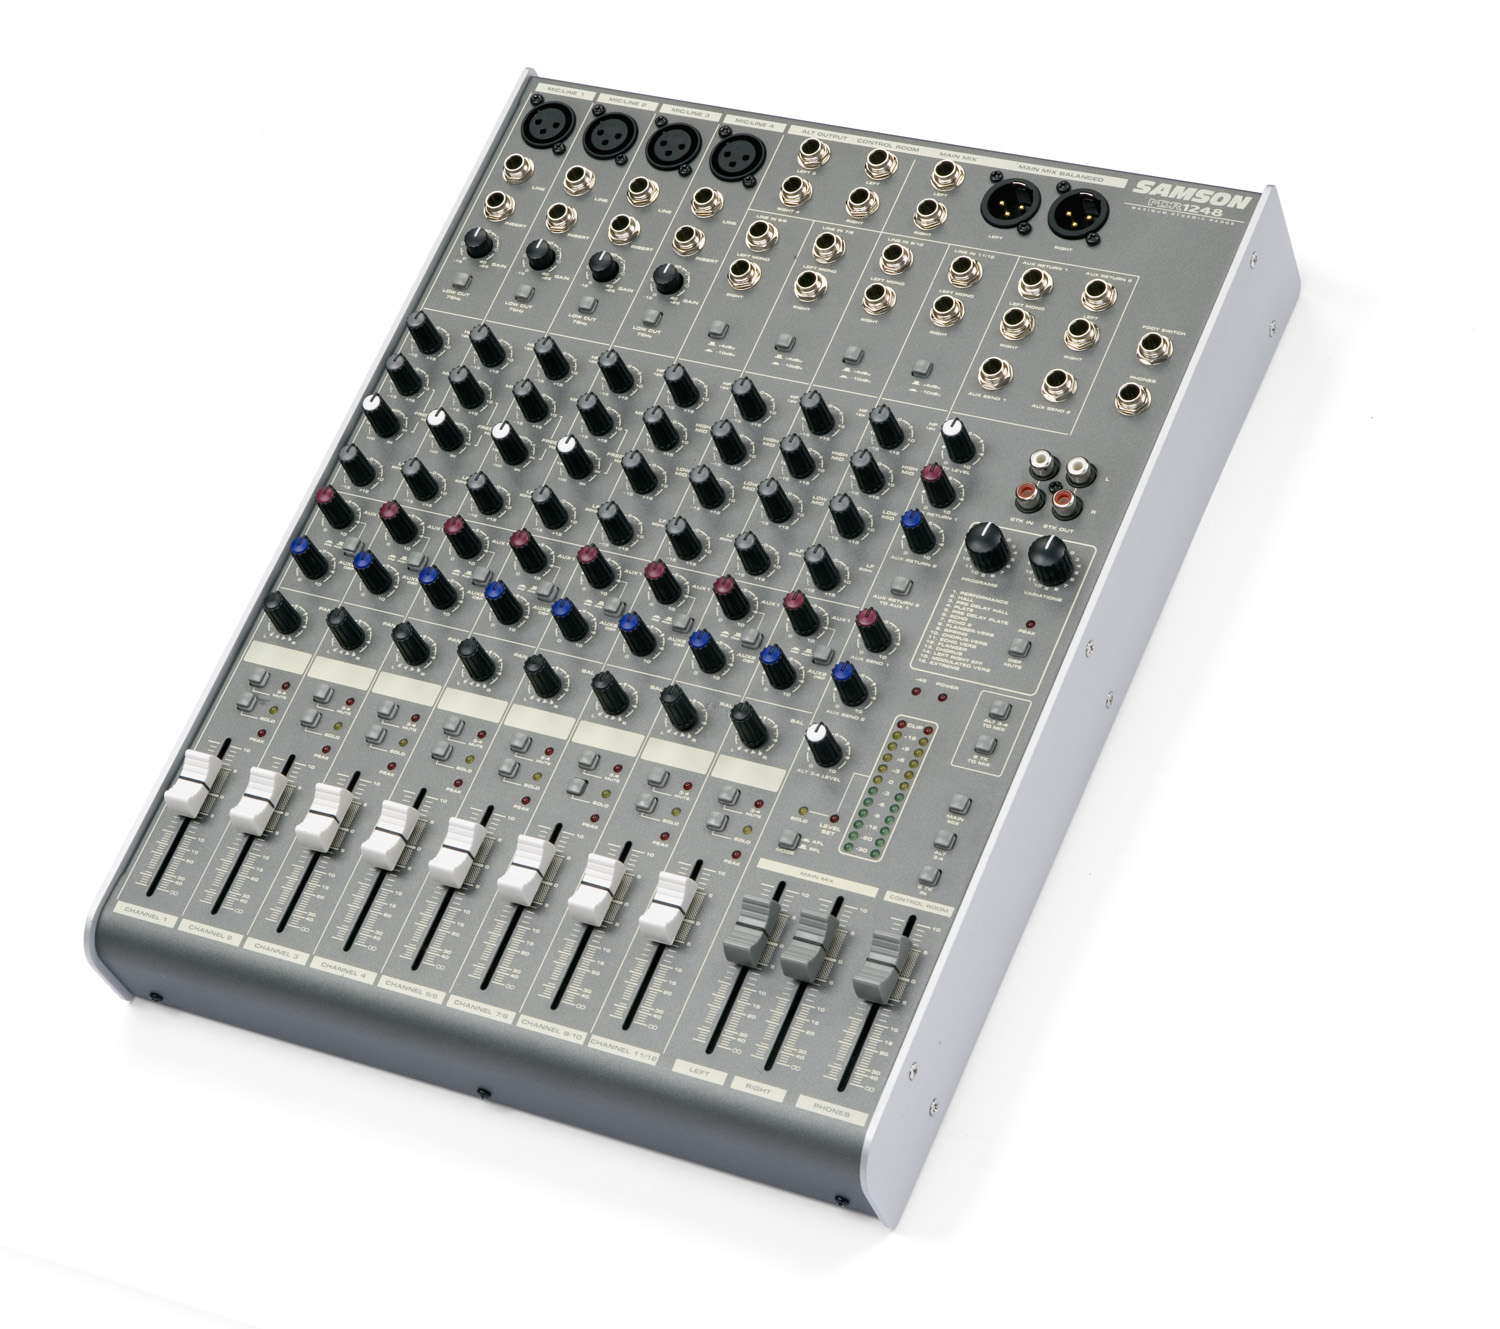 Samson Mdr1248 Low Cost Mic Mixer 12 Channel 4 Line With Dsp Discontinued